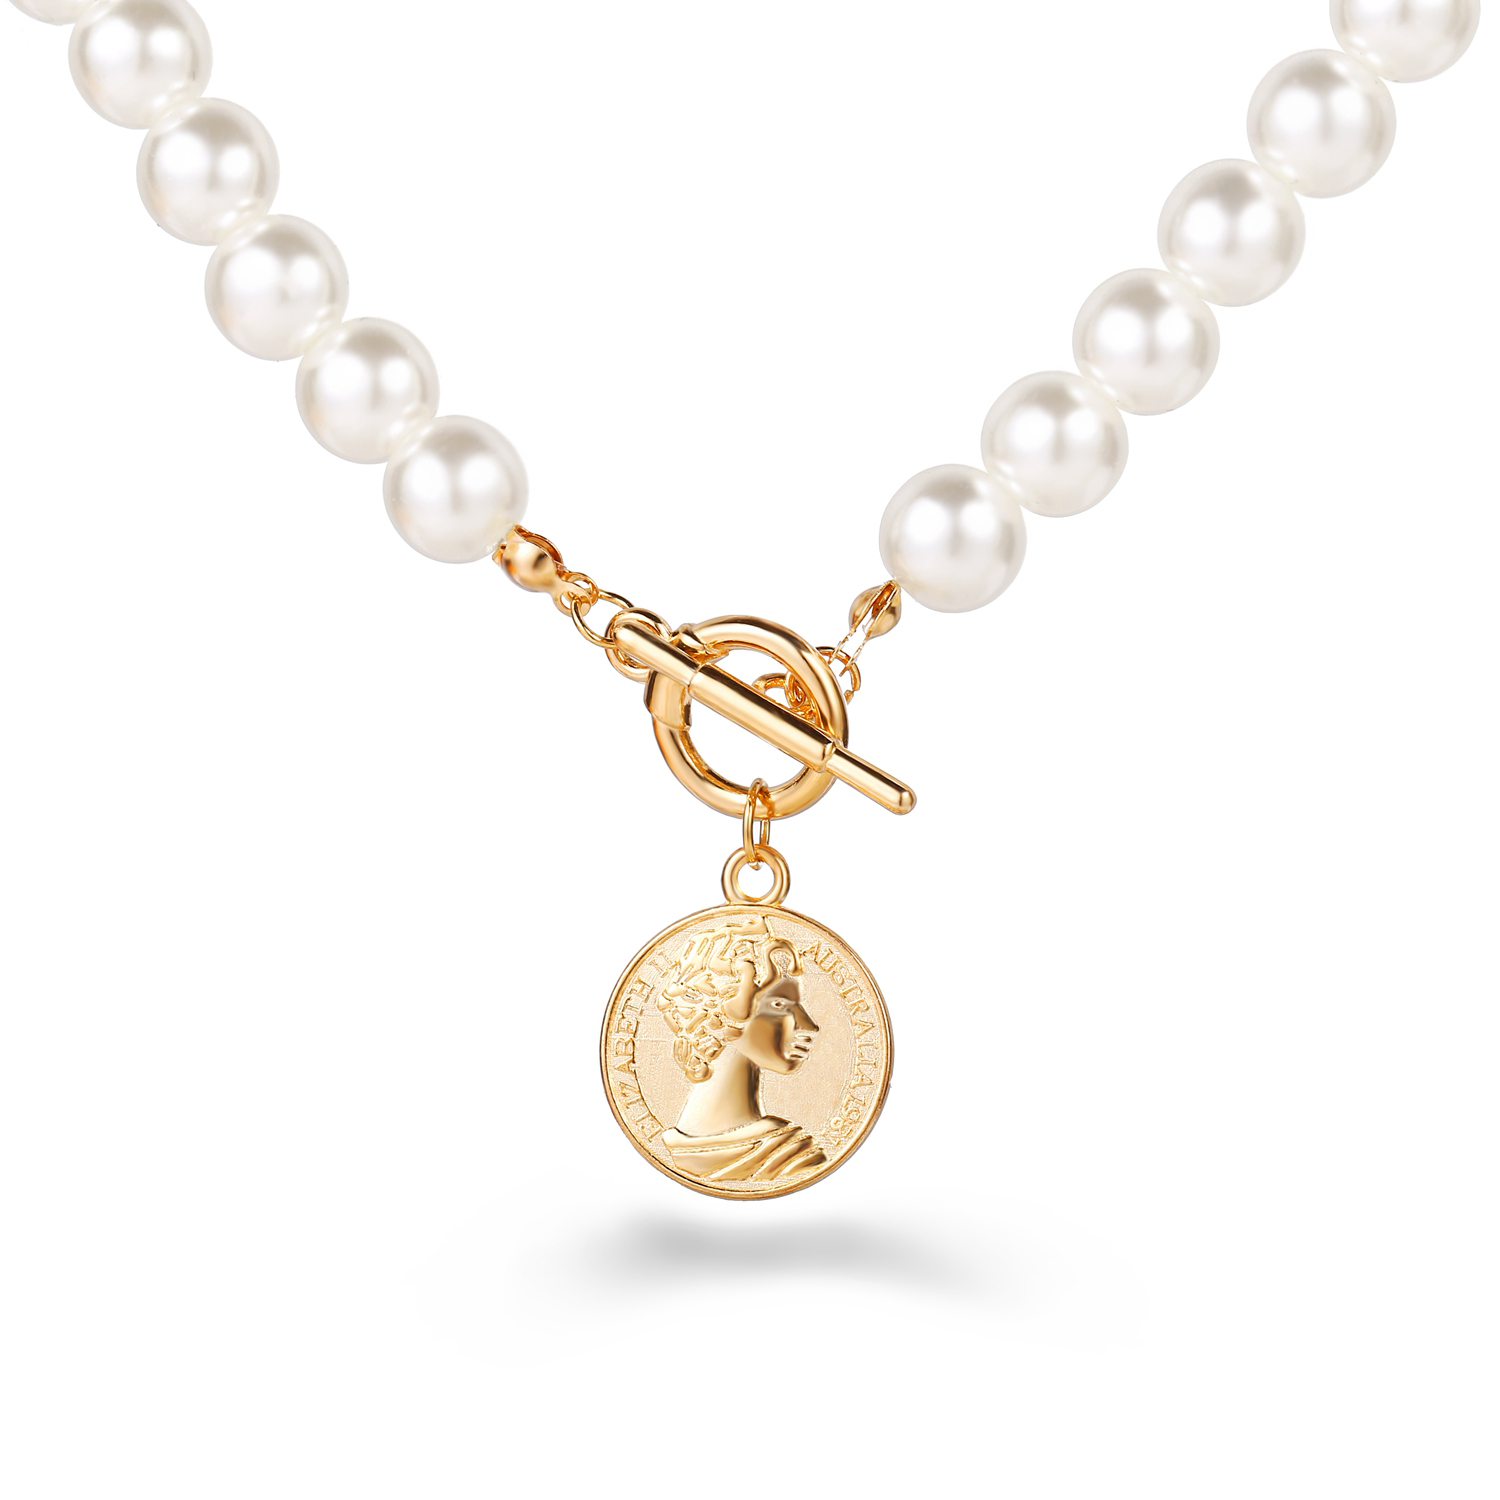 17KM Fashion Multi Layer Lock Portrait Pendants Necklaces For Women Gold Metal Key Heart Necklace New Design Jewelry Gift 5